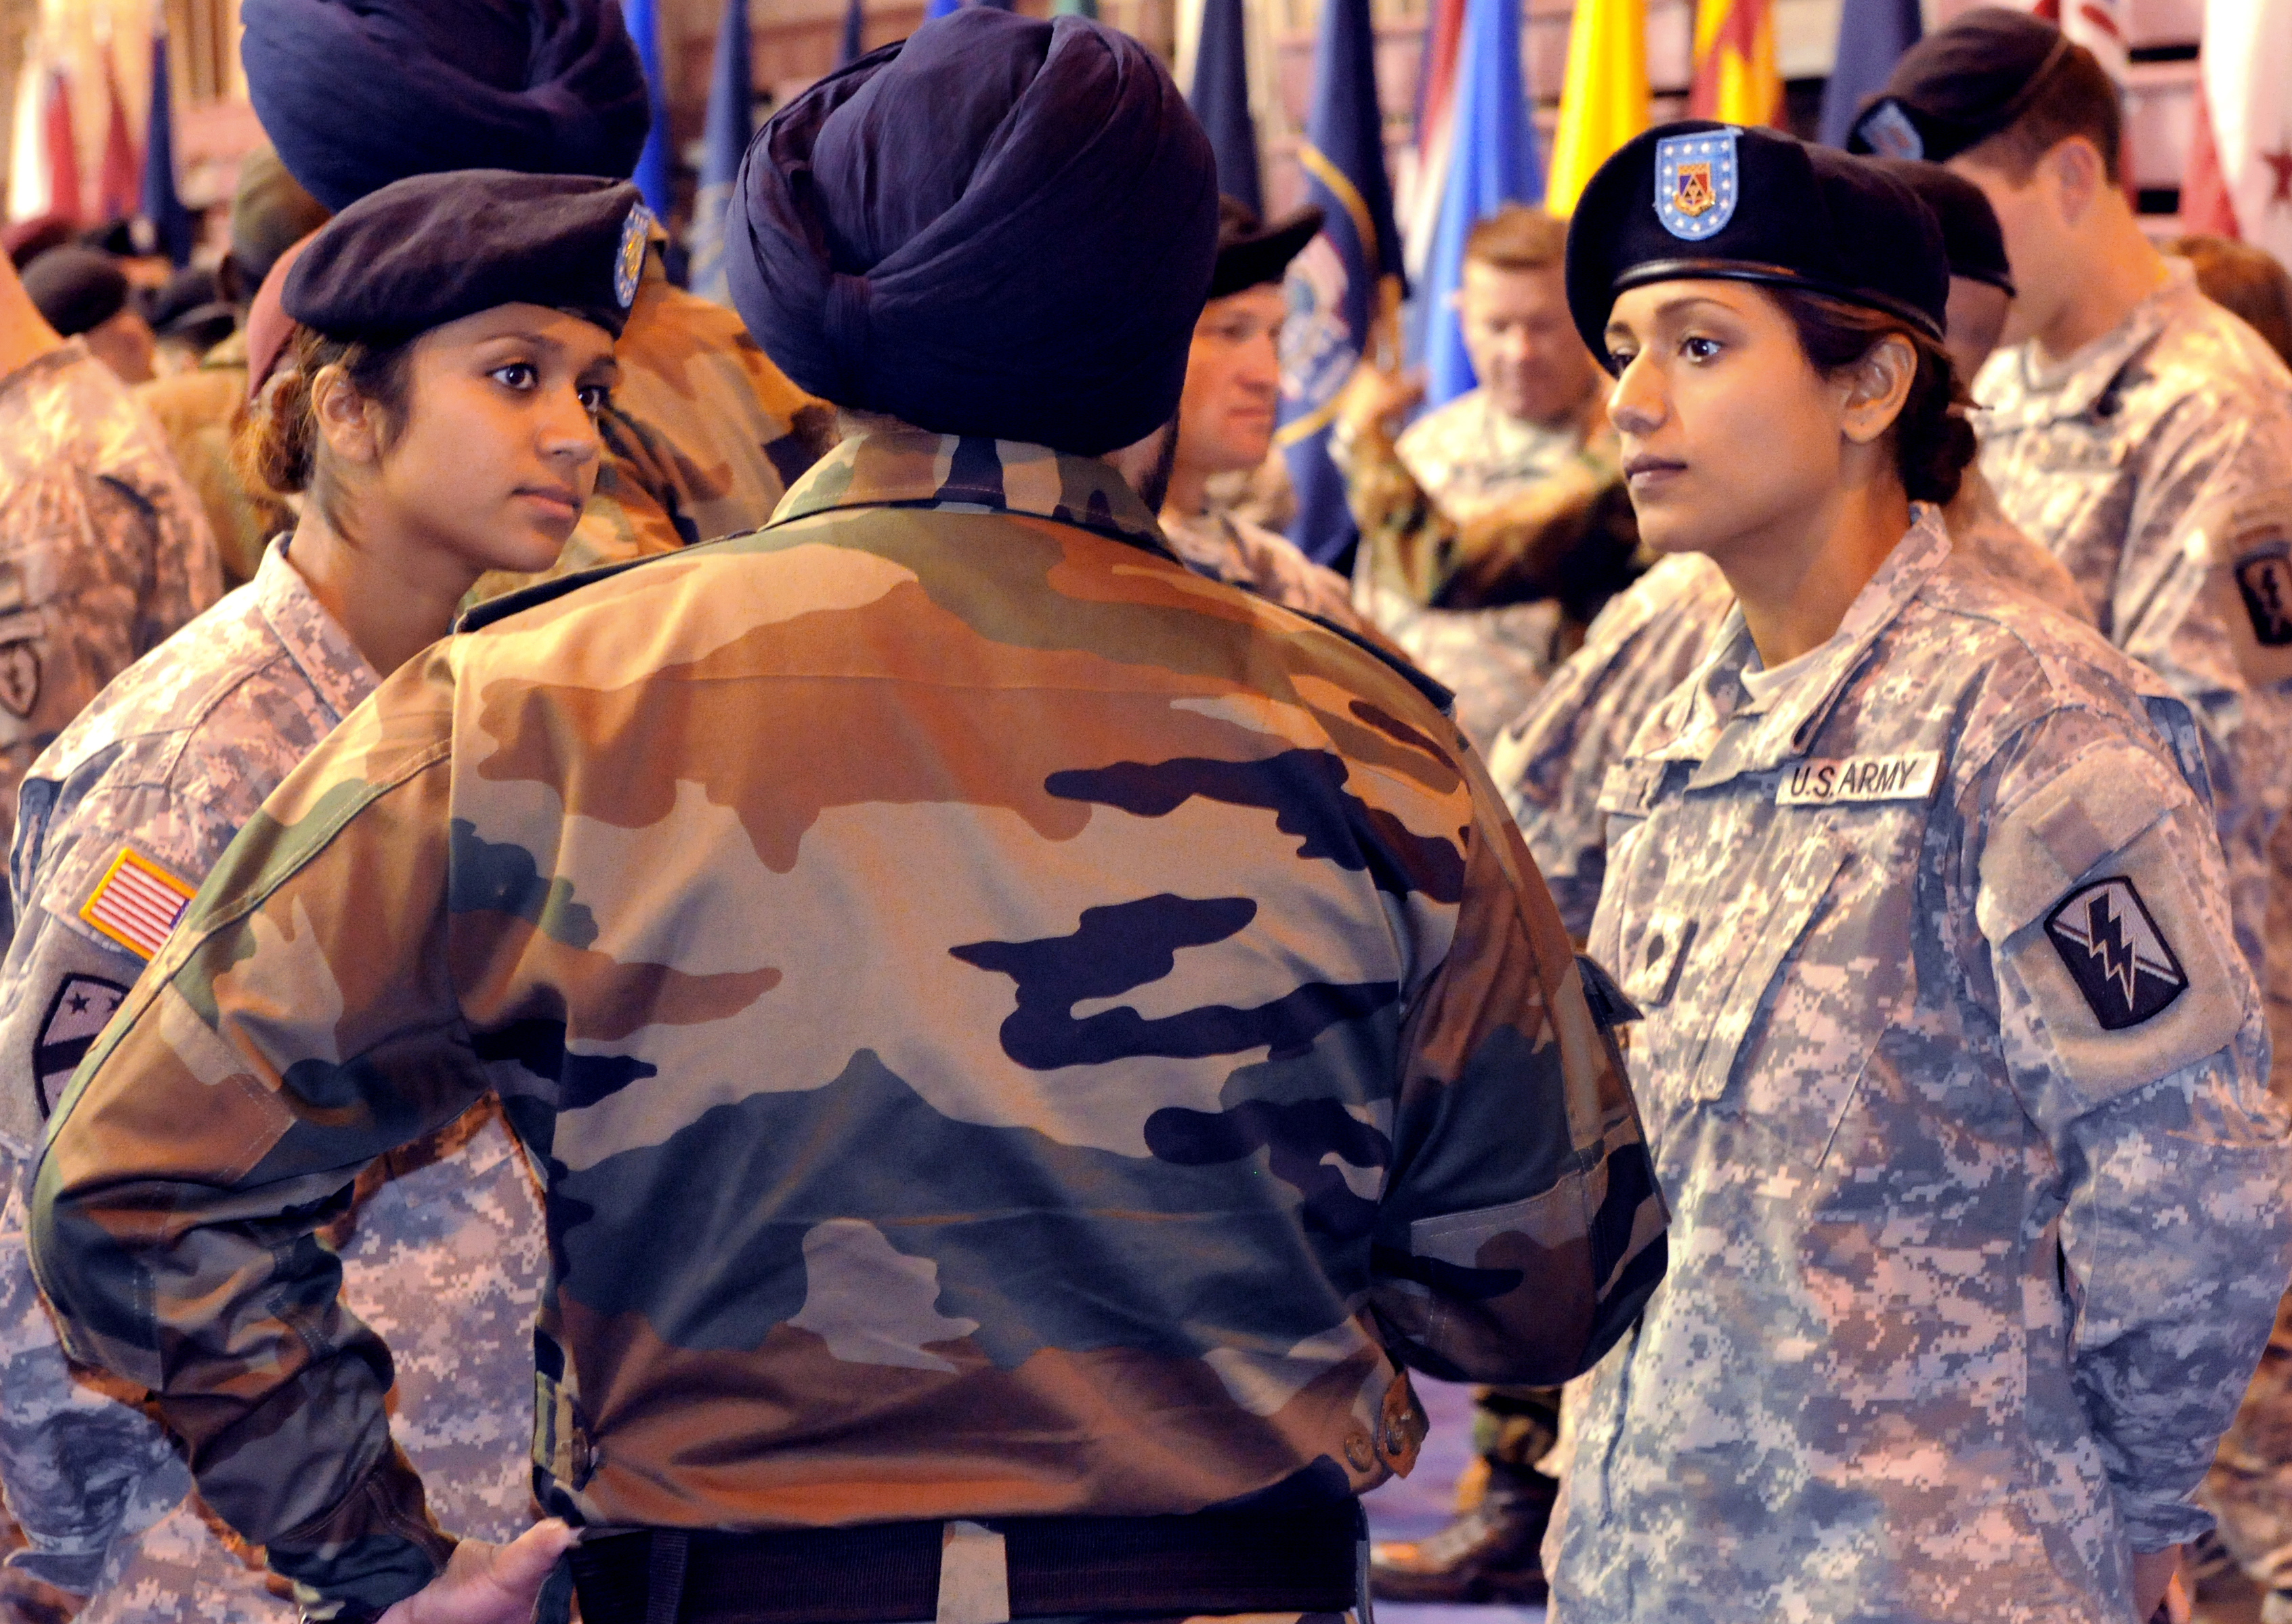 born sisters u s army cpl balreet kaur and spc jasleen file born sisters u s army cpl balreet kaur and spc jasleen kaur compare common courtesies of